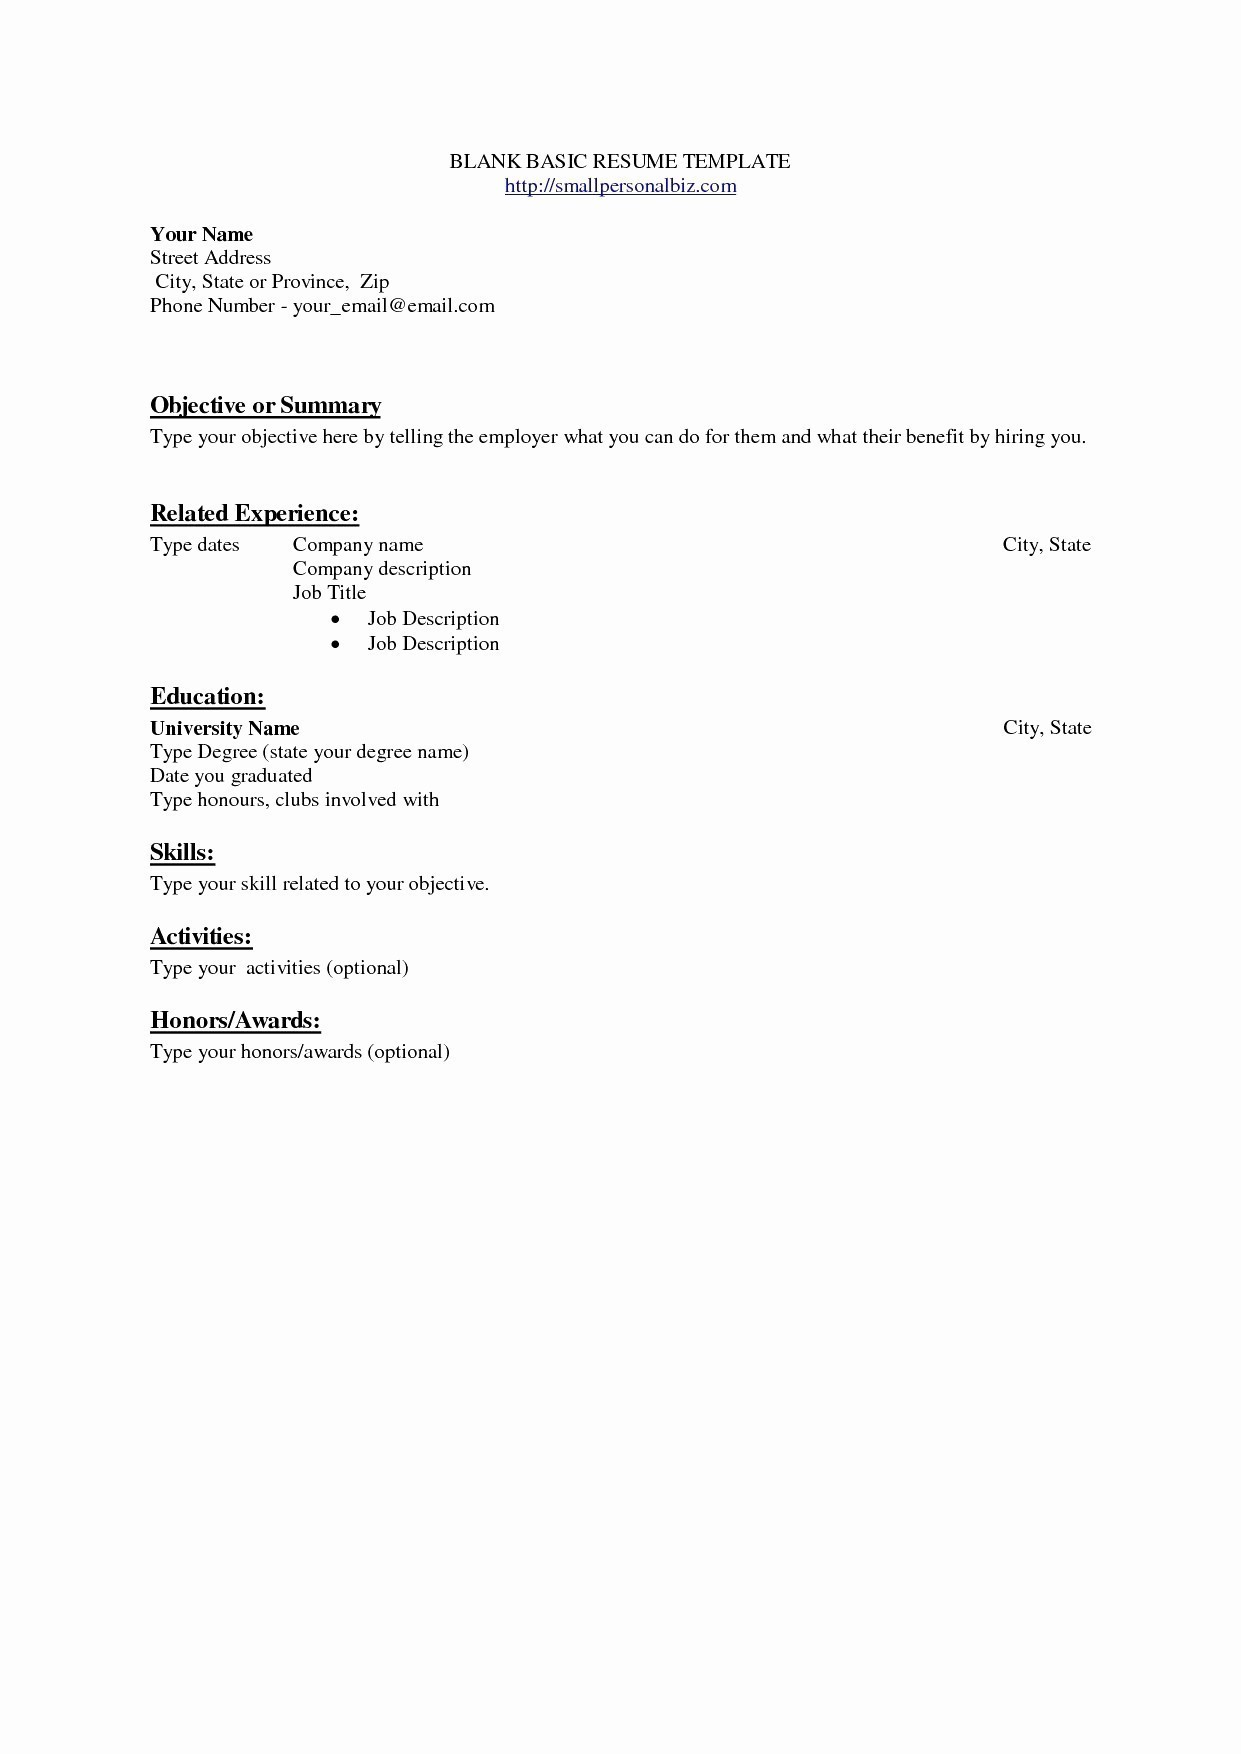 Resume Professional Writers - Resume Professional Writers Review Lovely 37 Standard Professional